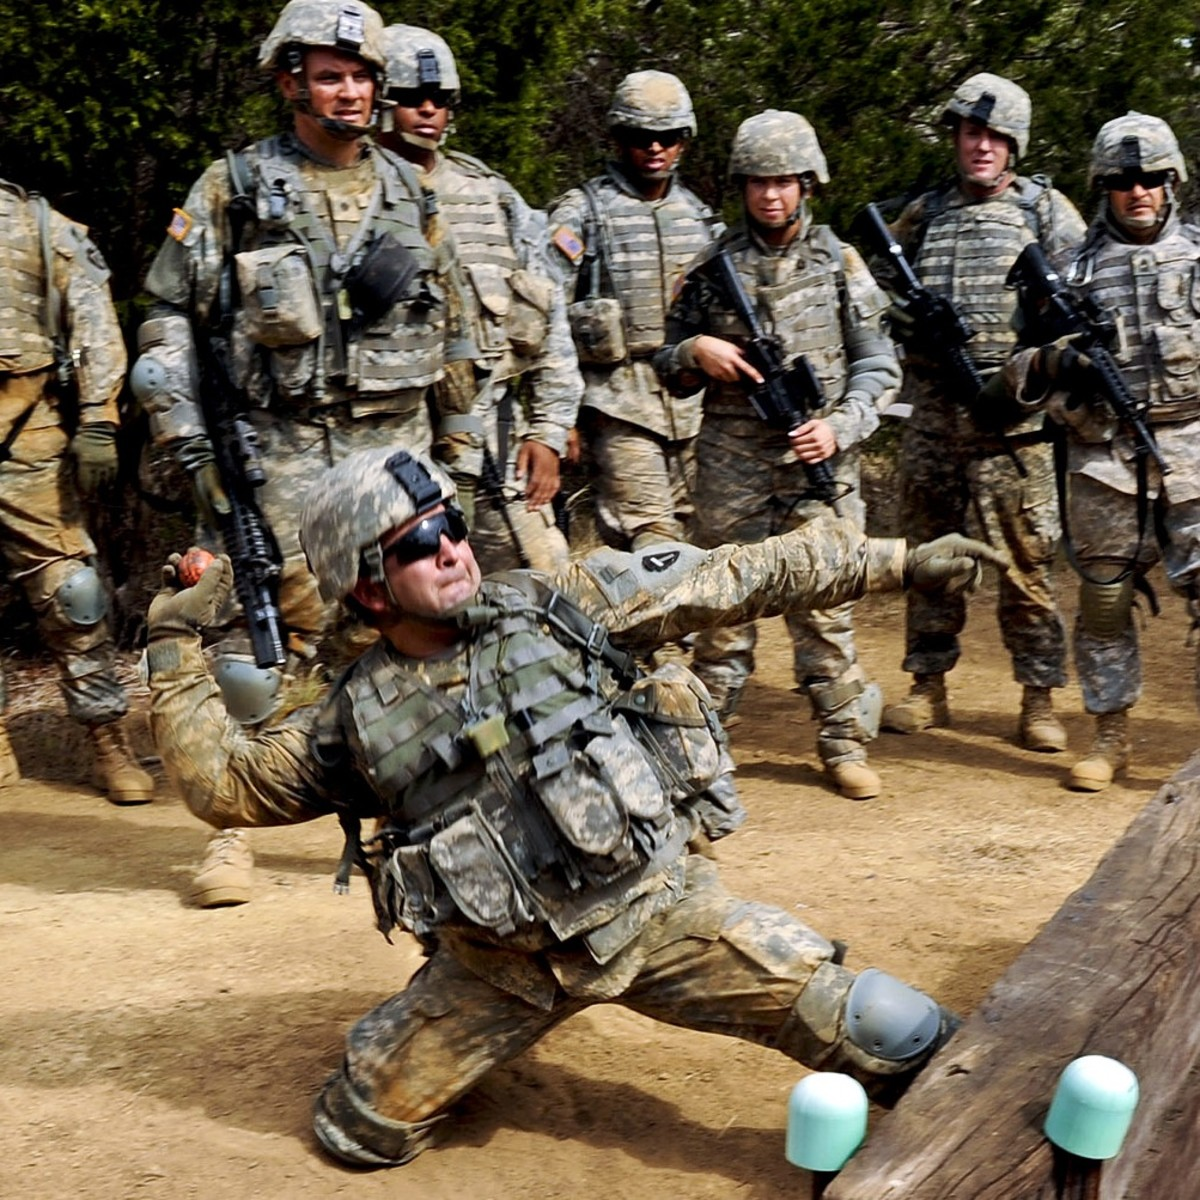 Basic Training Photos >> 7 Reasons Basic Training Is Easy That Nobody Tells You Hubpages